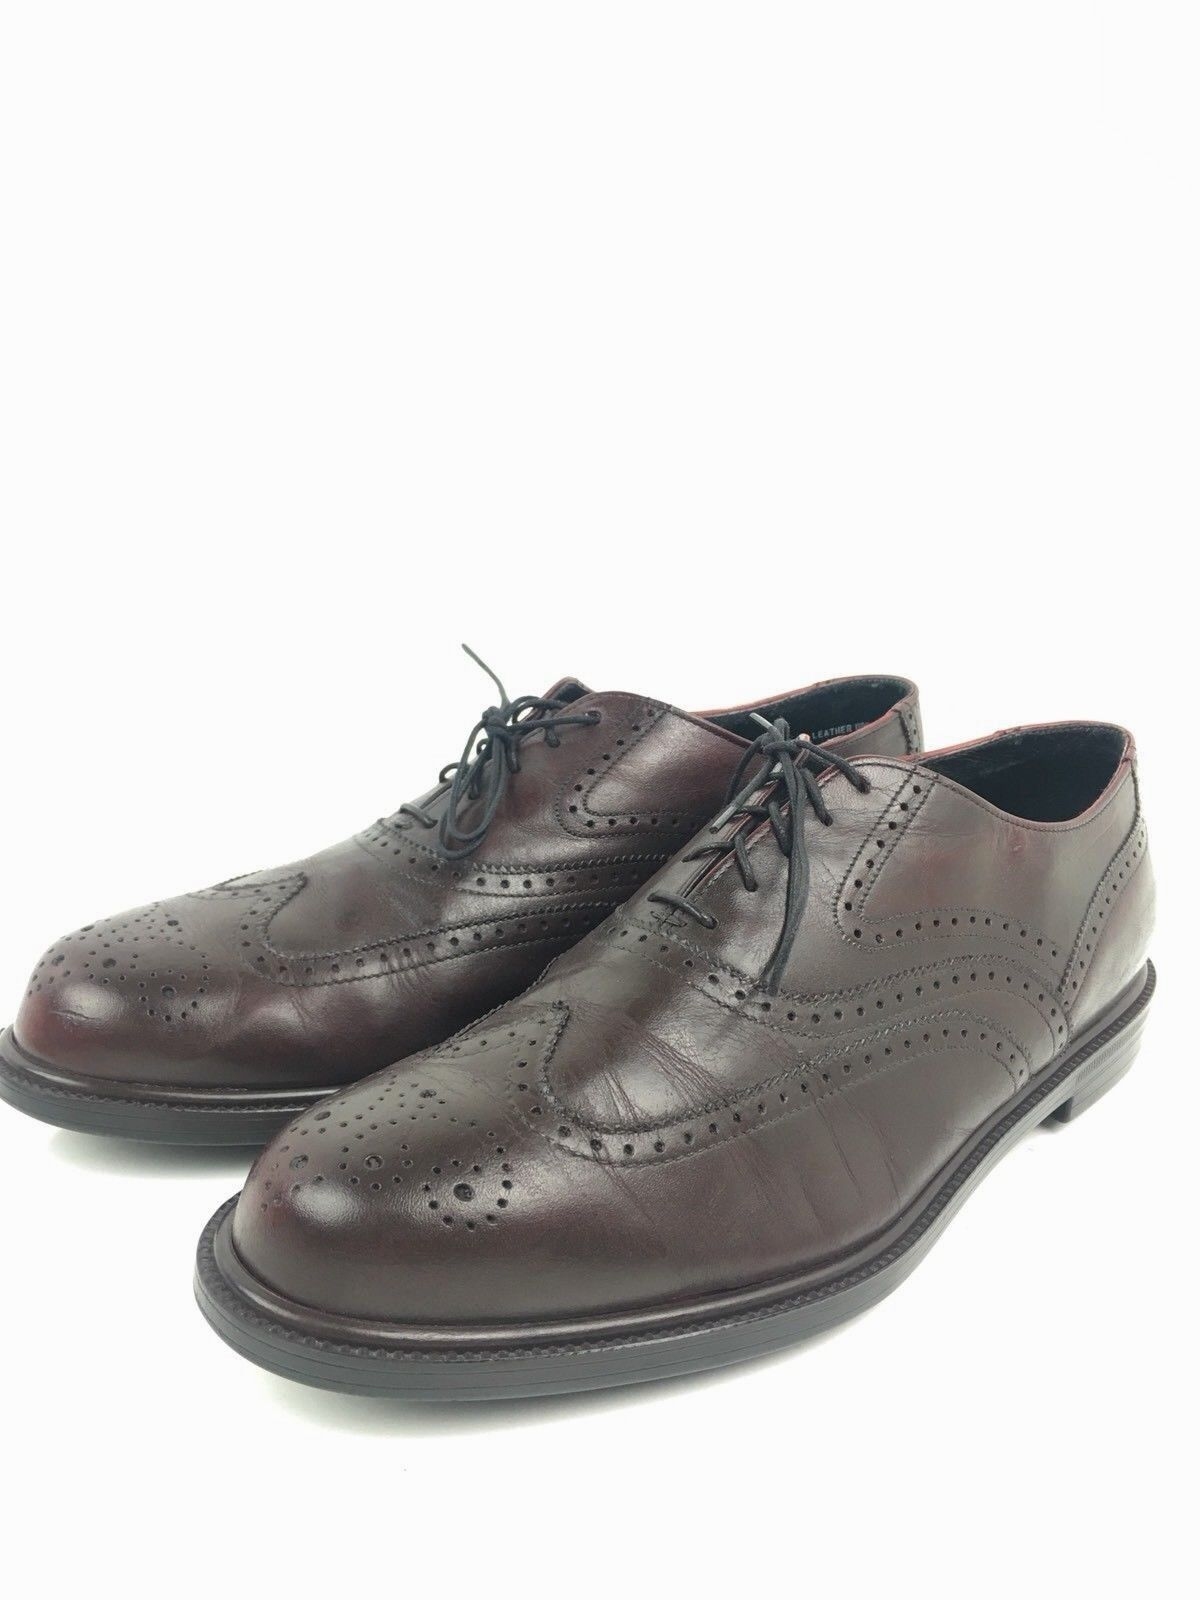 Neil M Mens US Sz 10.5M Burgundy Brown Wingtip Oxford Laceup Dress shoes (A275)